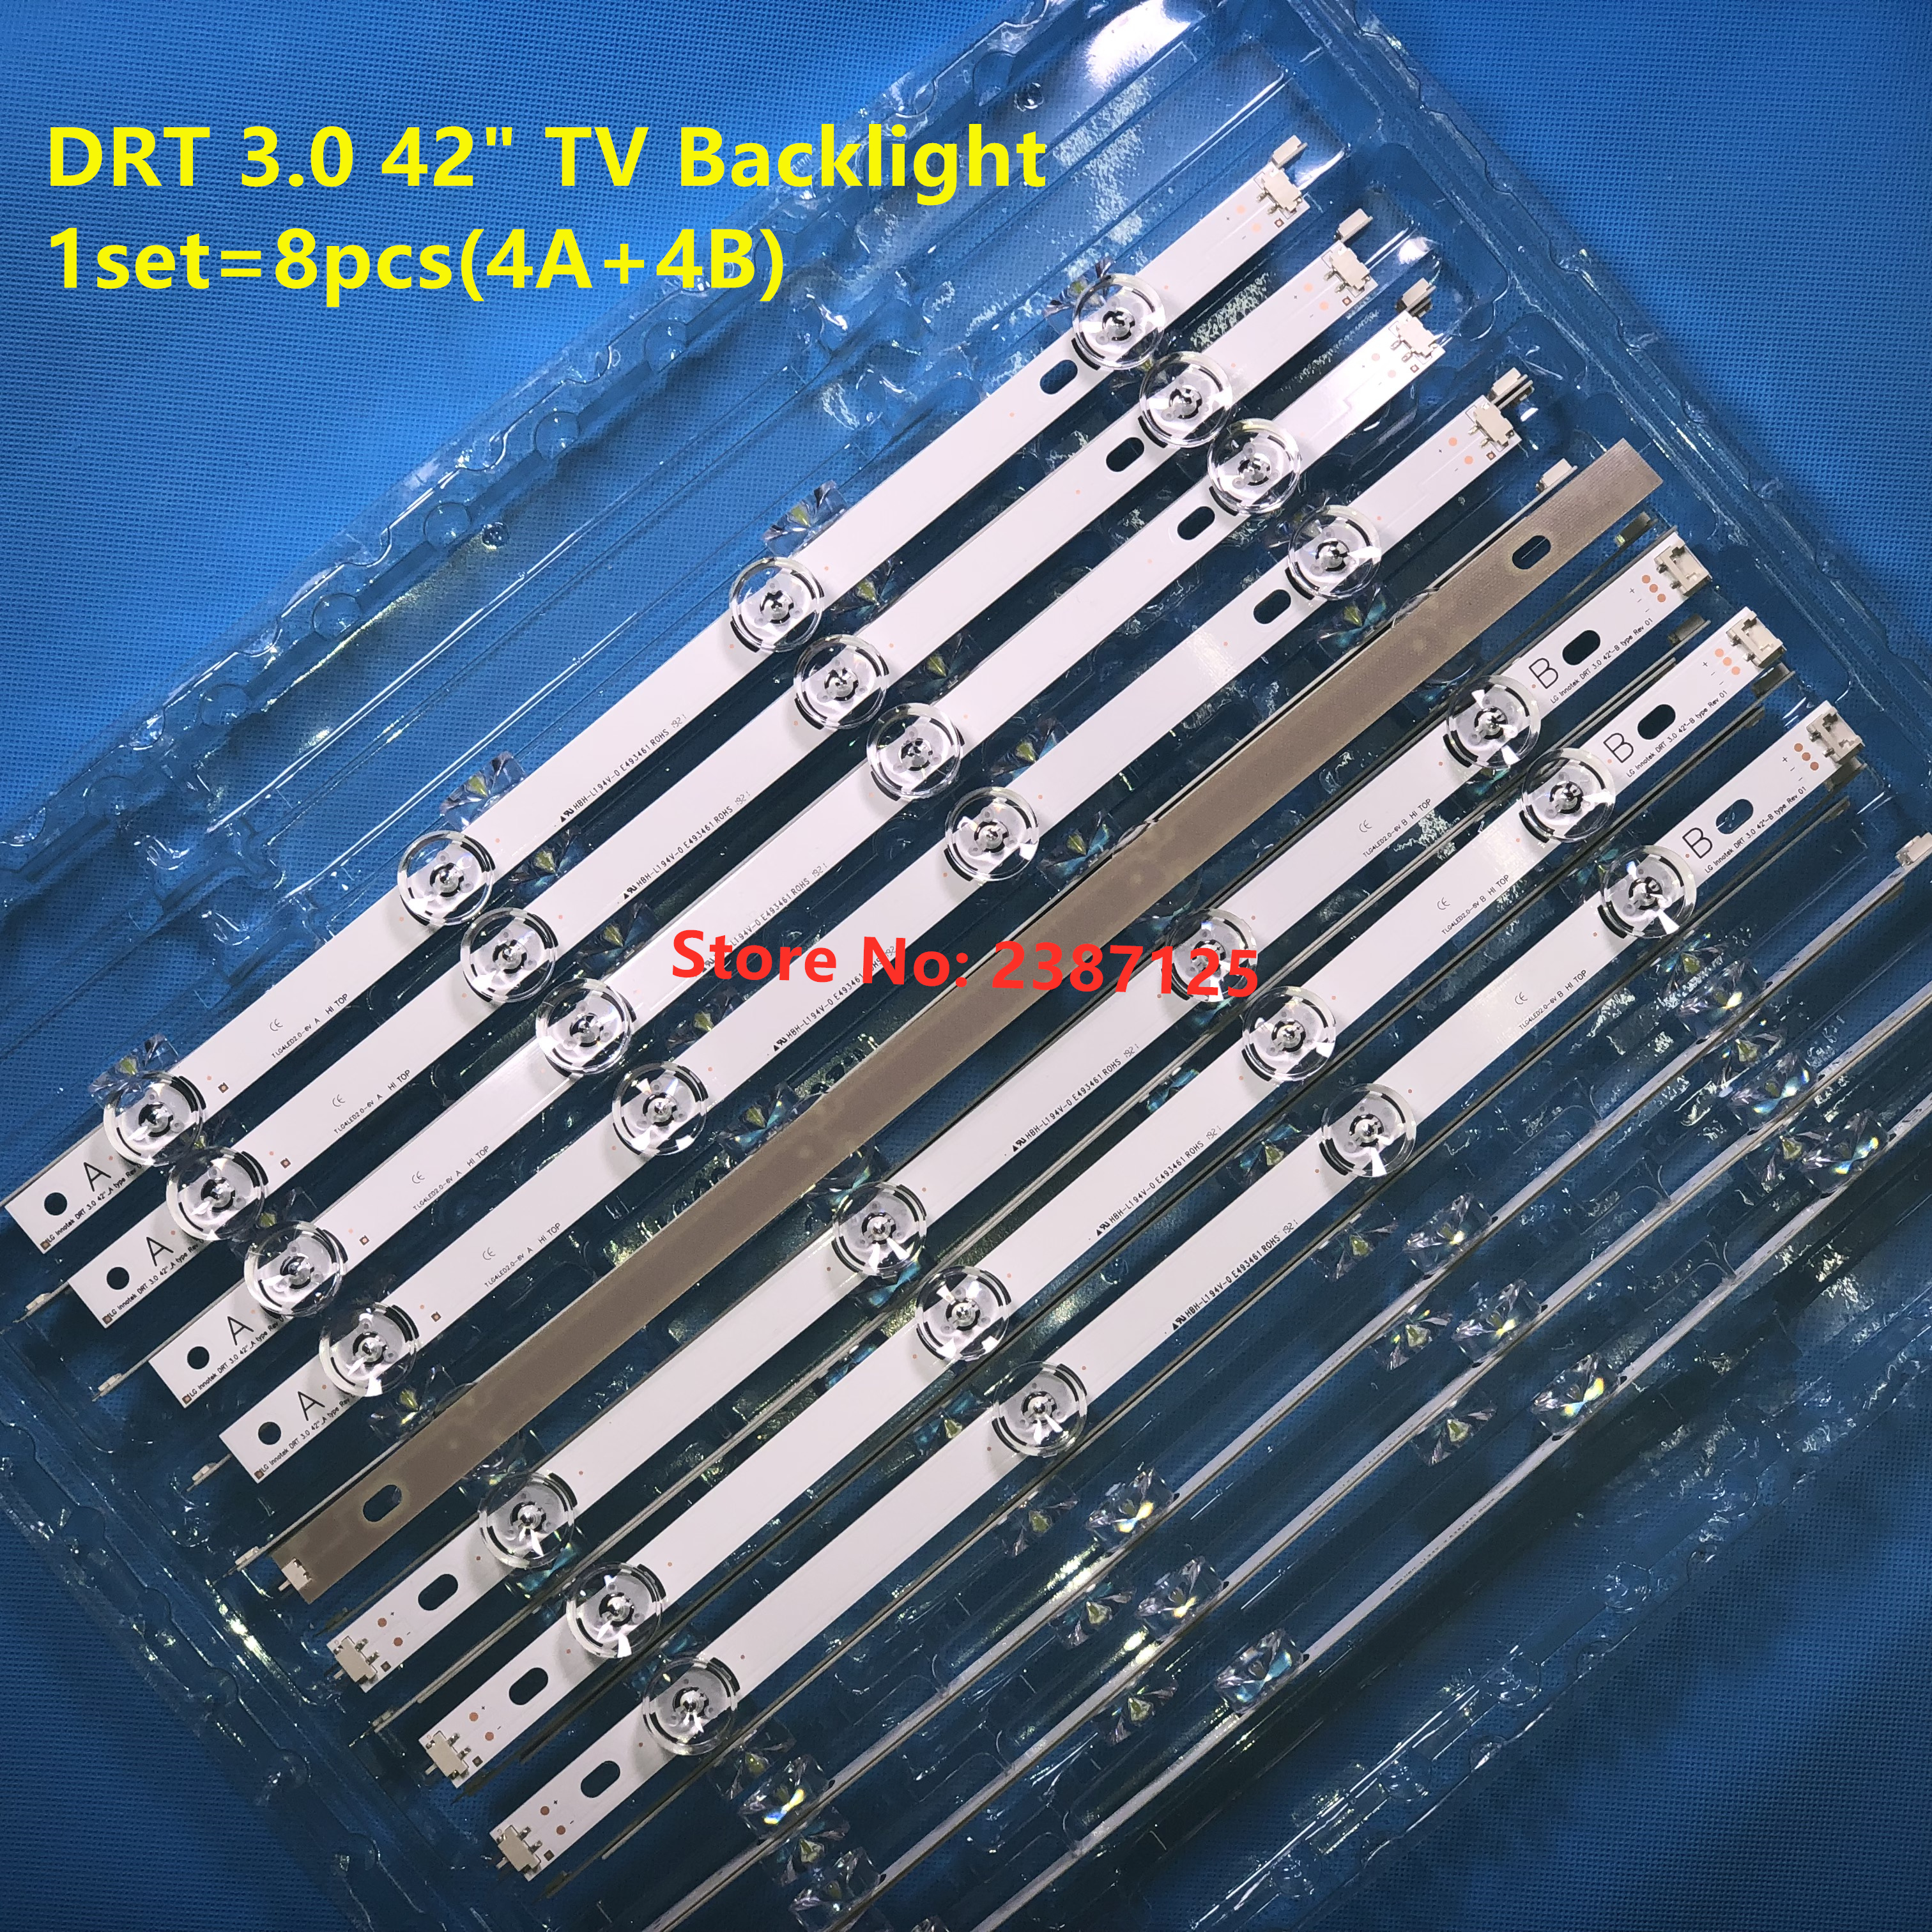 LED backlight strip for Lg drt 3.0 42 DIRECT AGF78402101 NC420DUN VUBP1 T420HVF07 42LB650V 42LB561U 42LB582V 42LB582B 42LB5550-in LED Bar Lights from Lights & Lighting